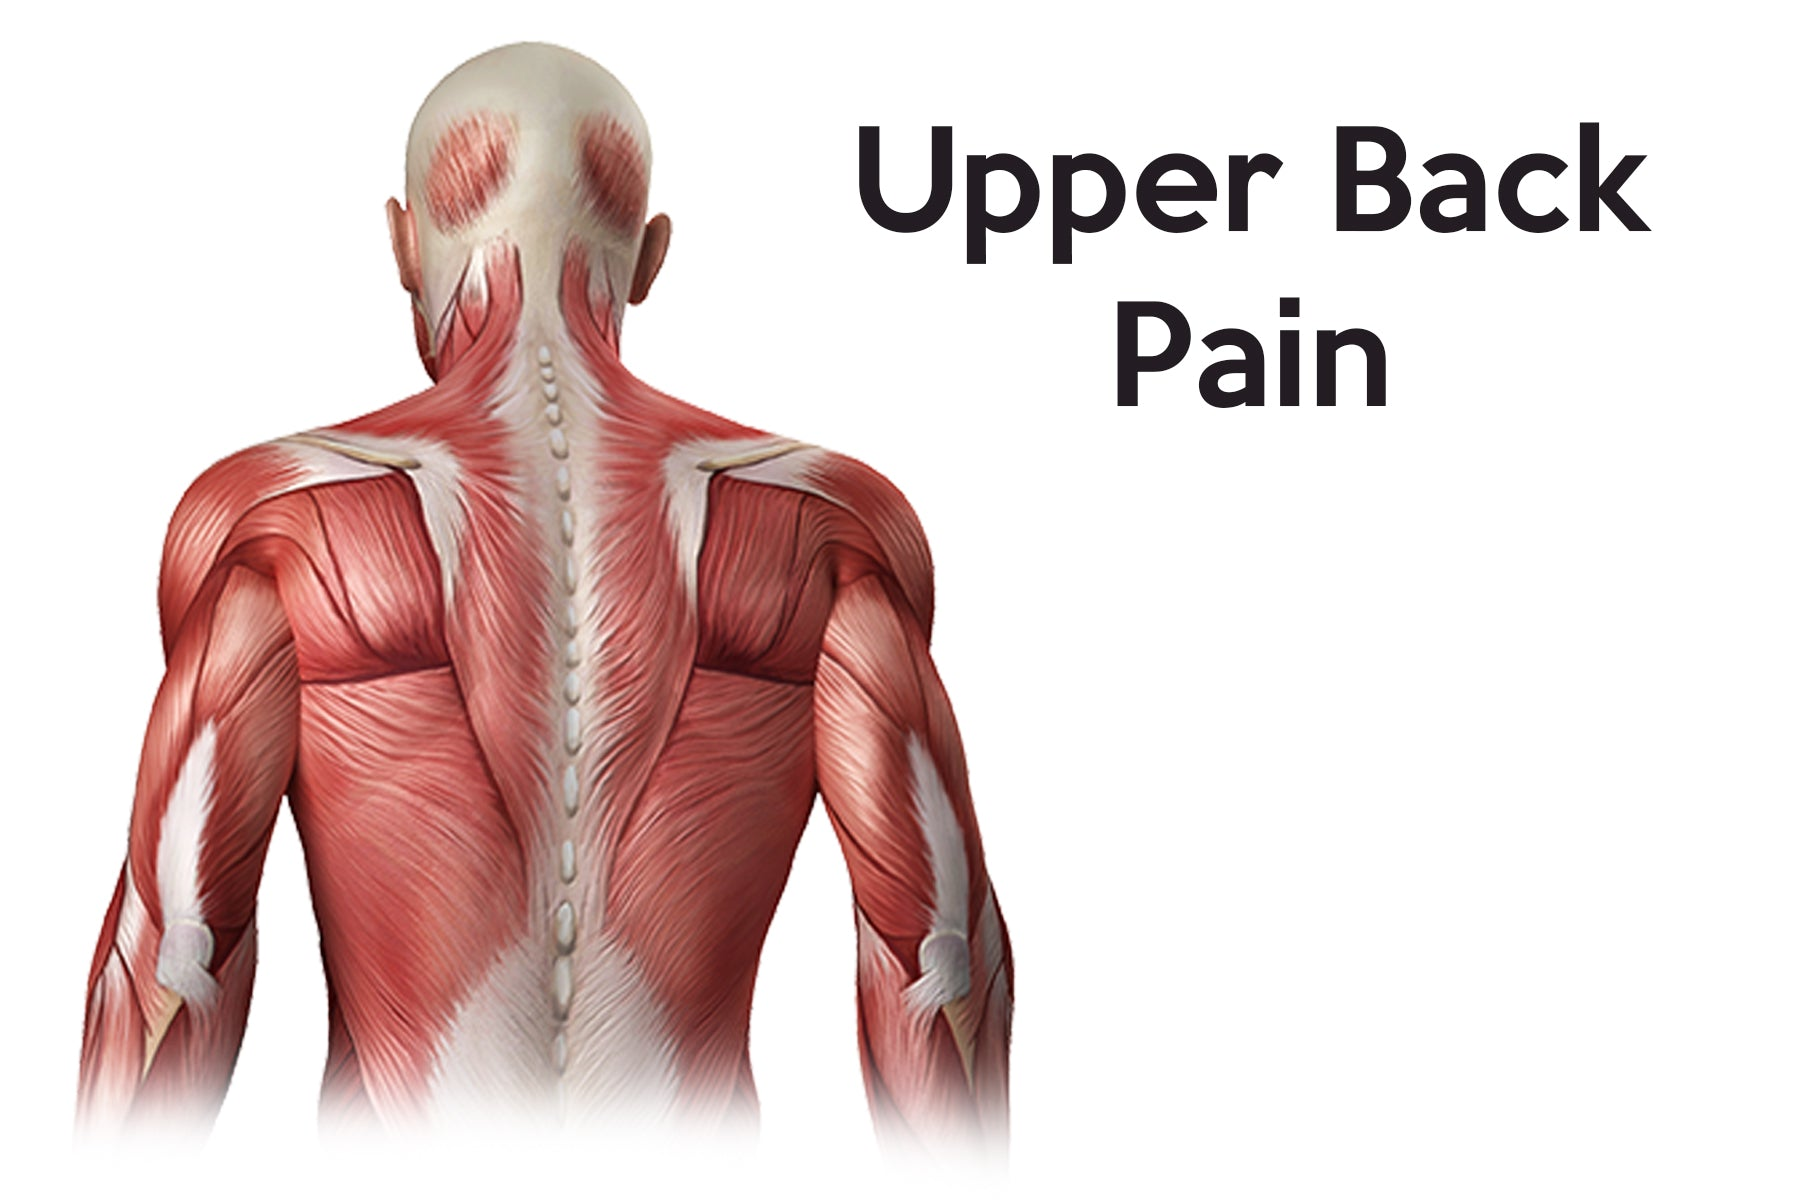 19ee8f431 learn more about types of upper back pain and their causes